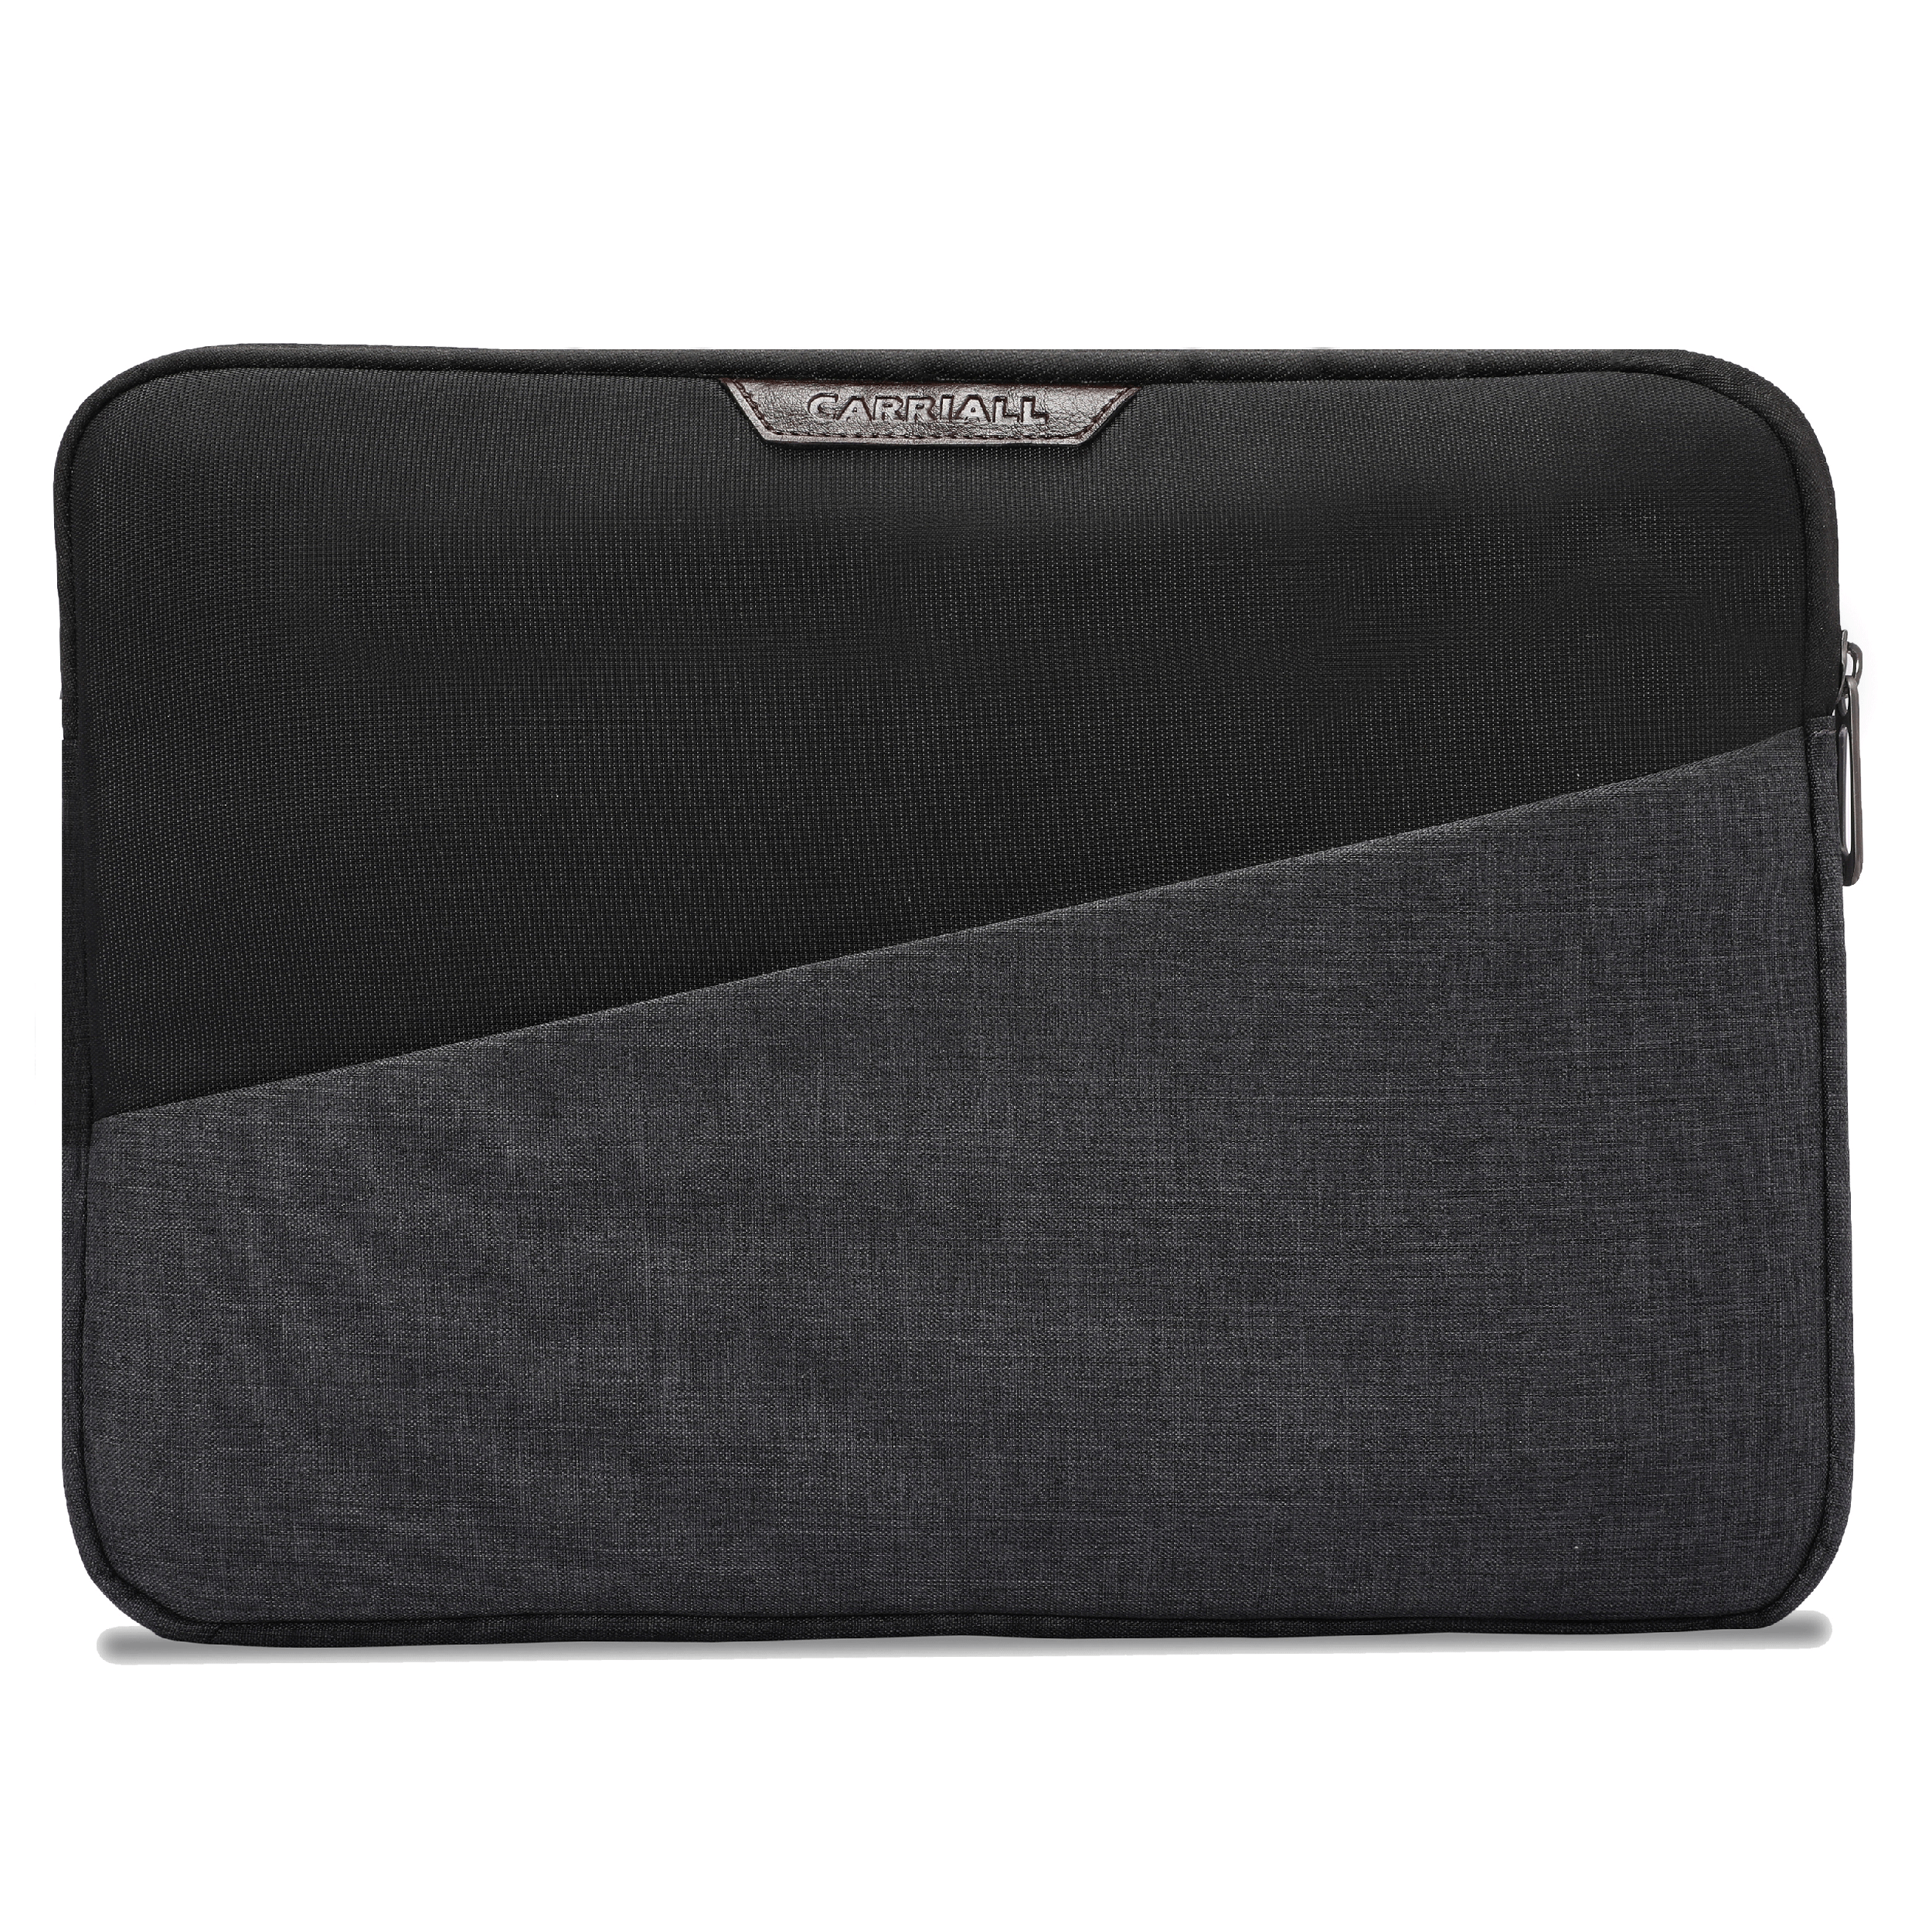 Carriall Ascent Durable Fabric Sleeve for 13 Inch Laptop (Water-Resistant, CALSASCENT1, Black)_1